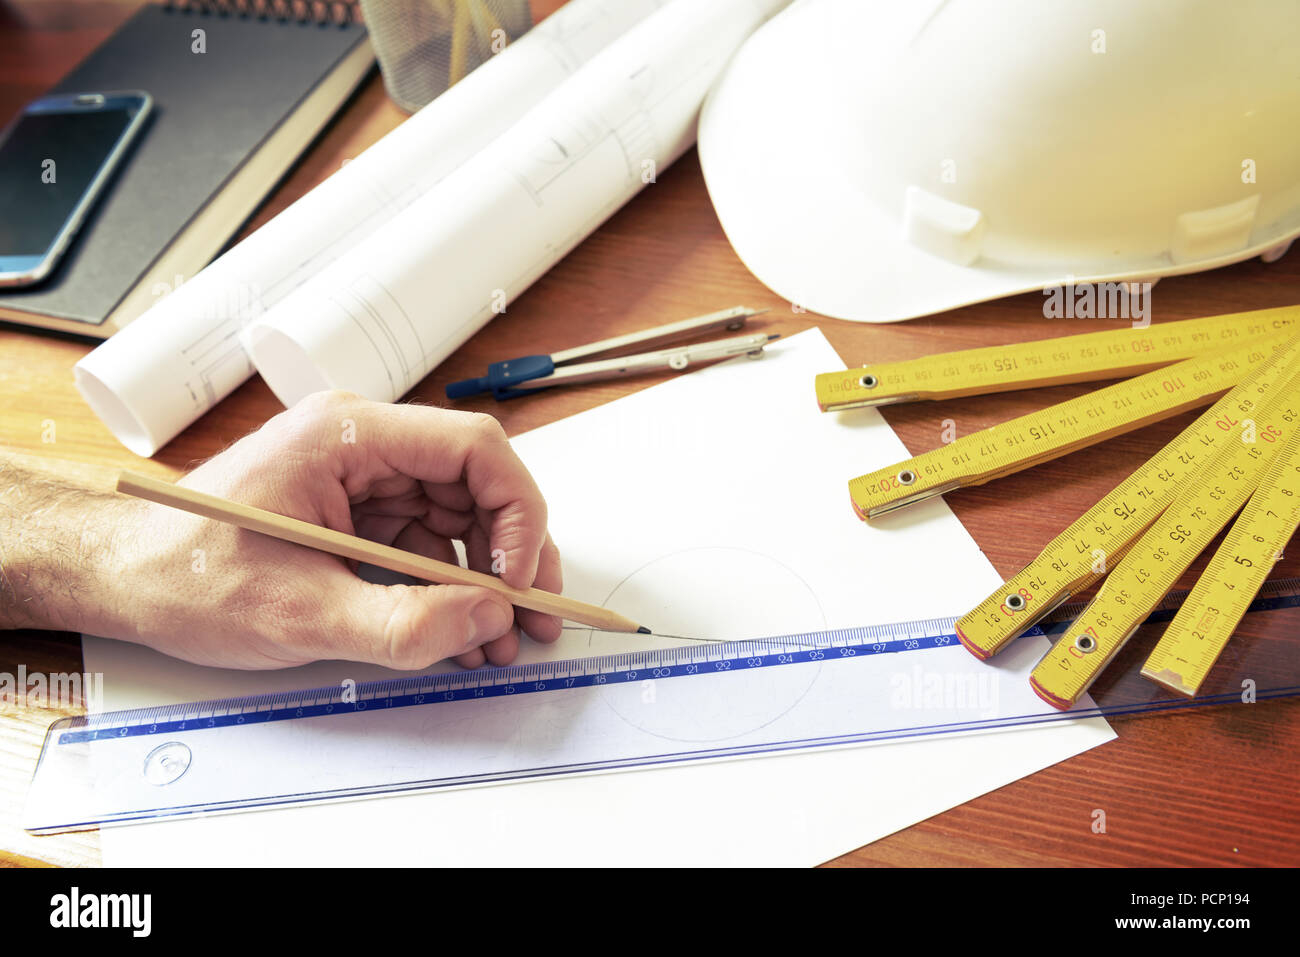 Hand drawing with pencil using ruler, construction plans with helmet, measure, mobile phone, and drawing tools - Stock Image